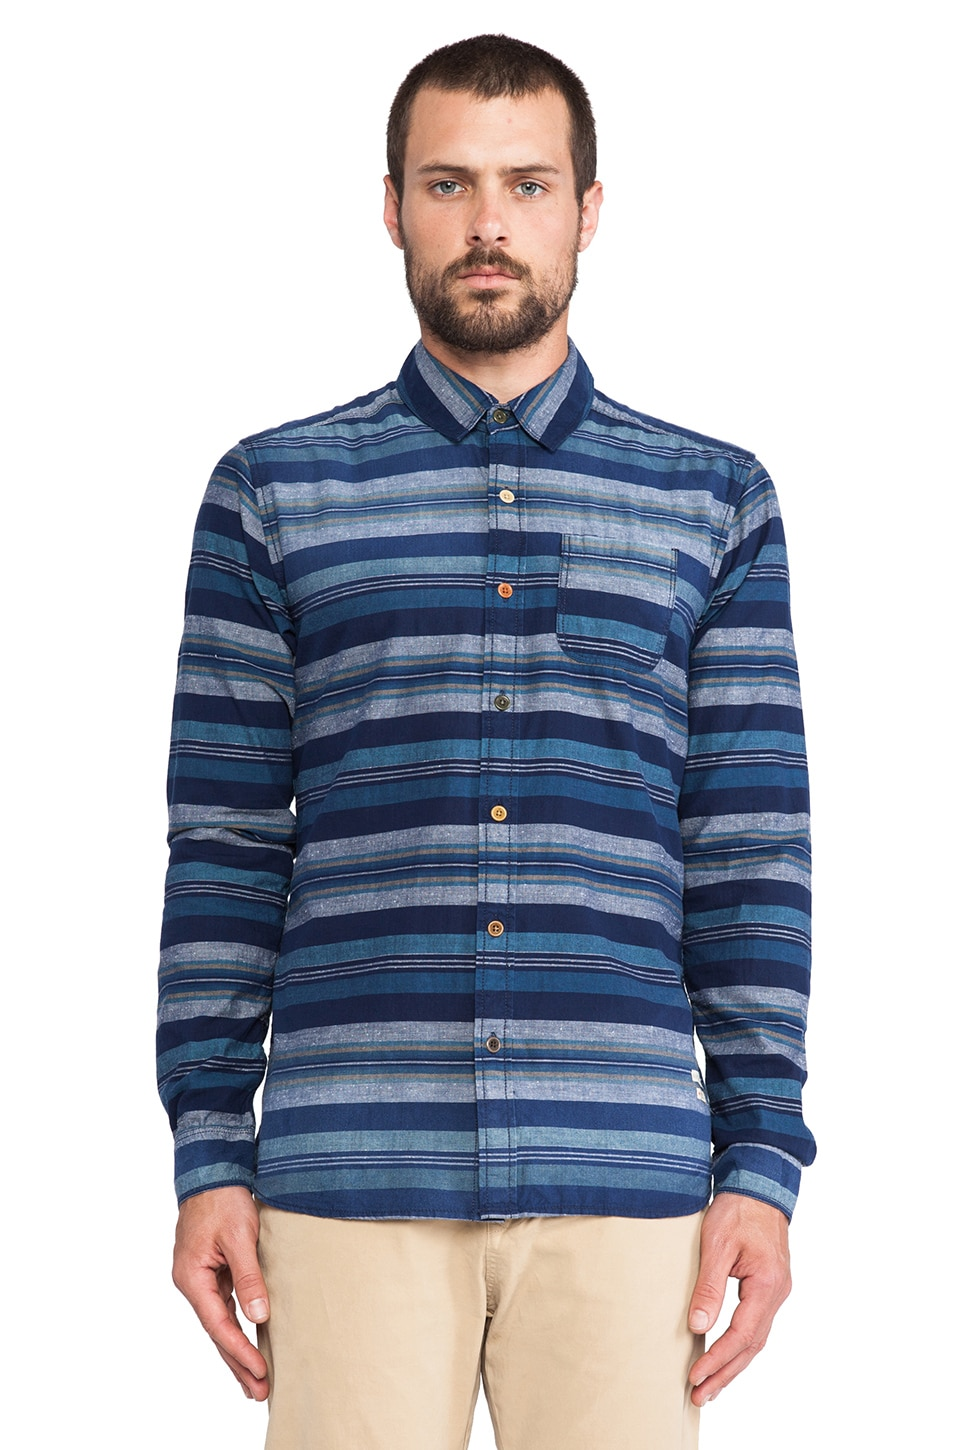 Scotch & Soda Striped & Bath Pattern Button down Shirt in Blue